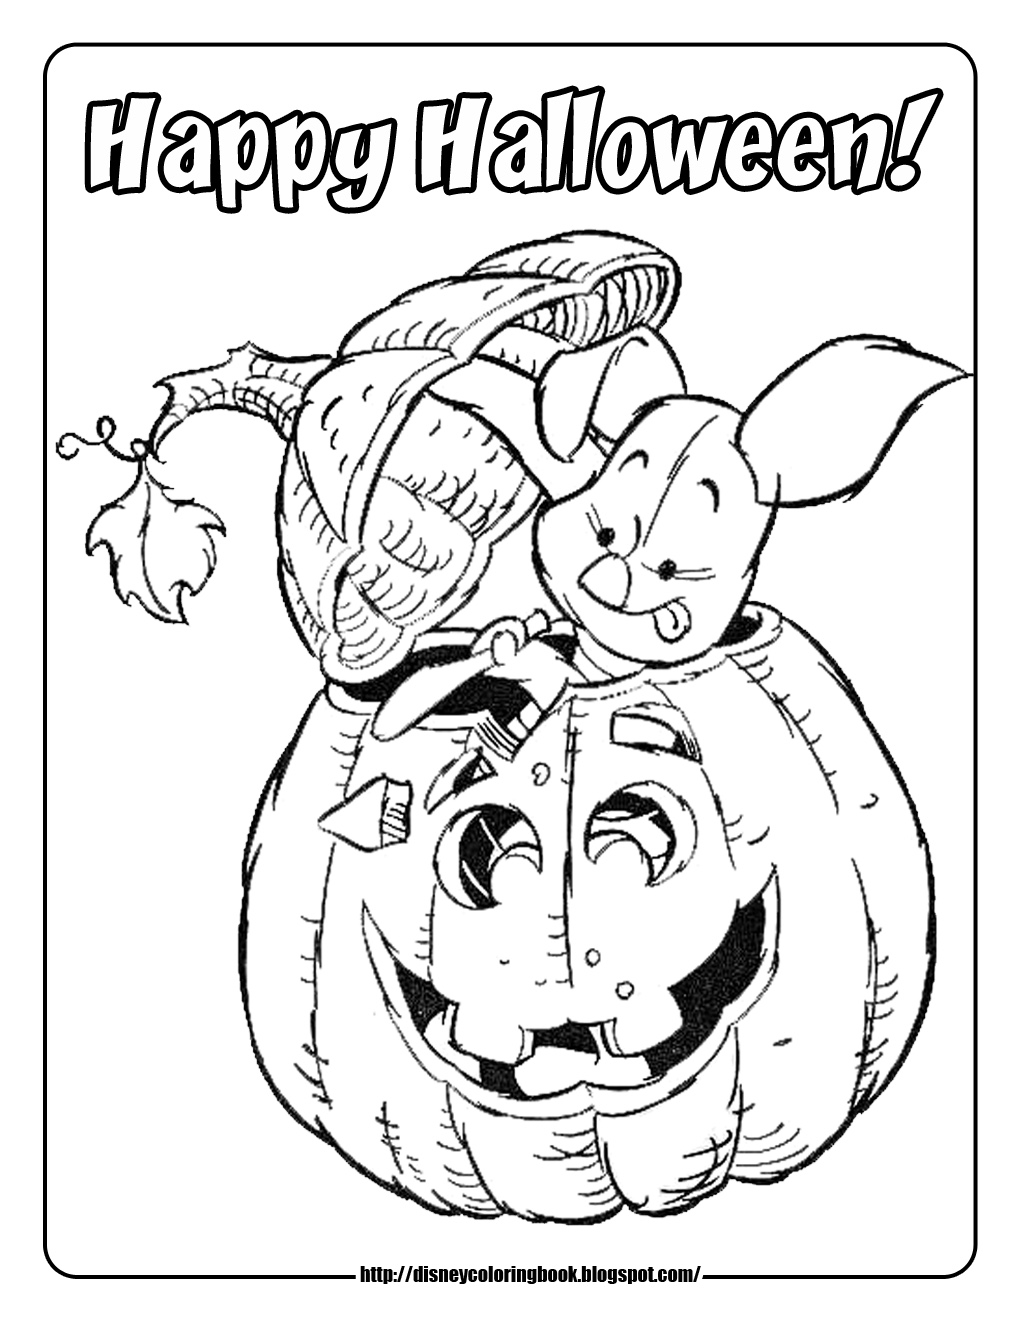 halloween free coloring pages | Disney Coloring Pages and Sheets for Kids